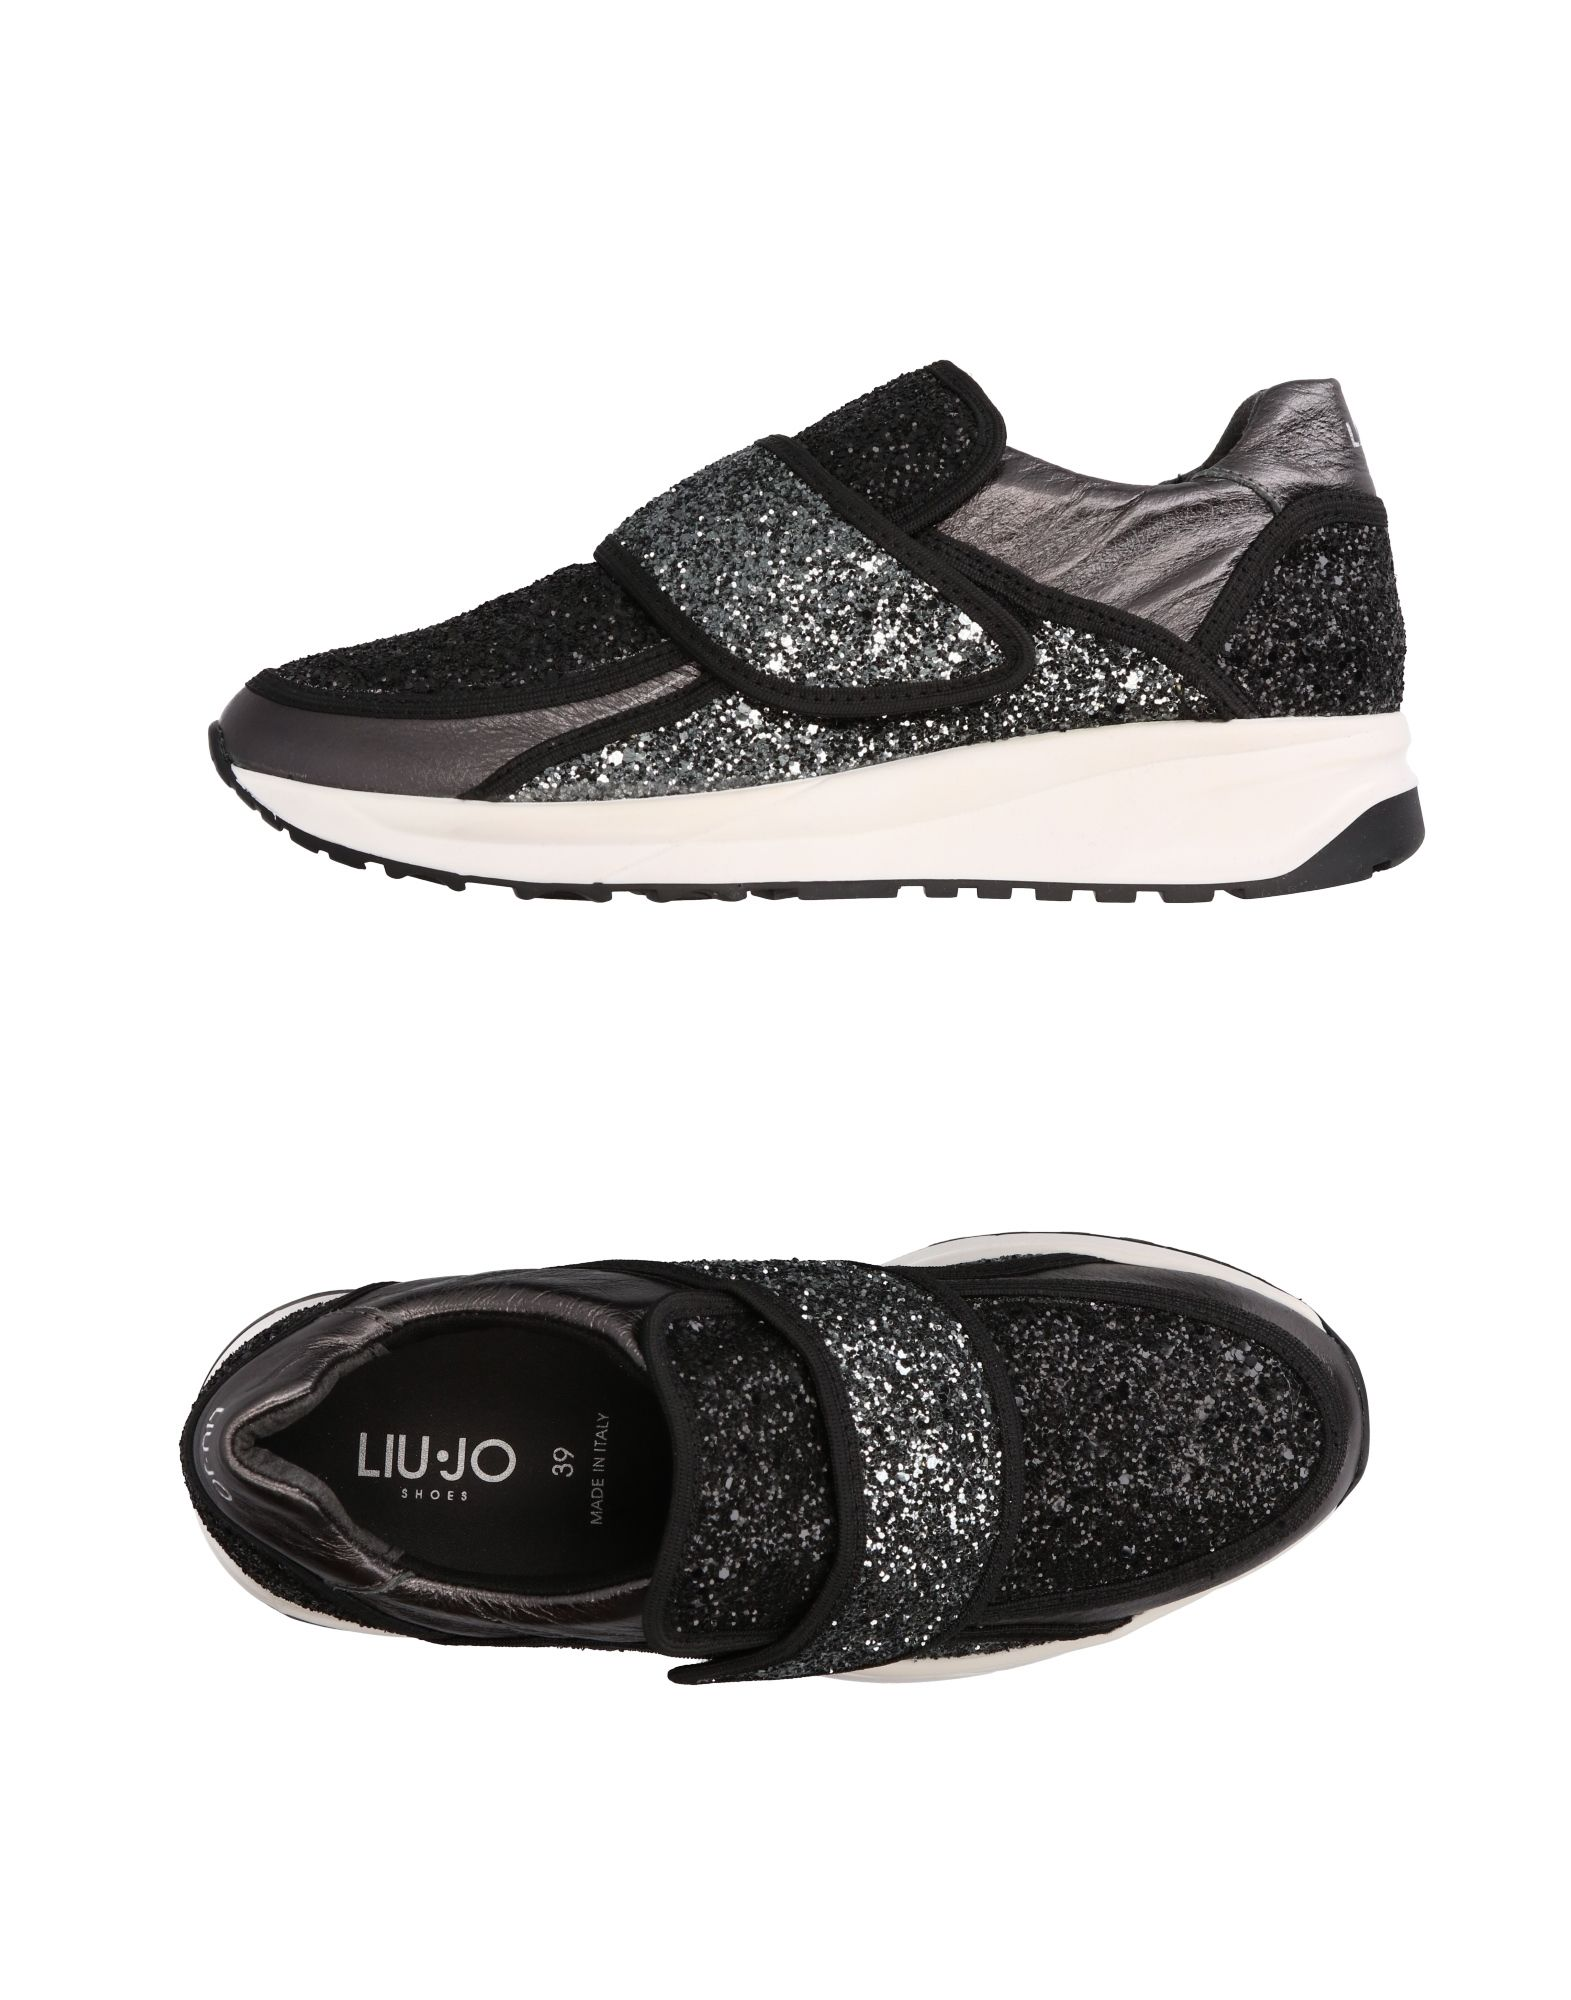 Liu •Jo Shoes  Sneakers Damen  Shoes 11239621JH  e499ae